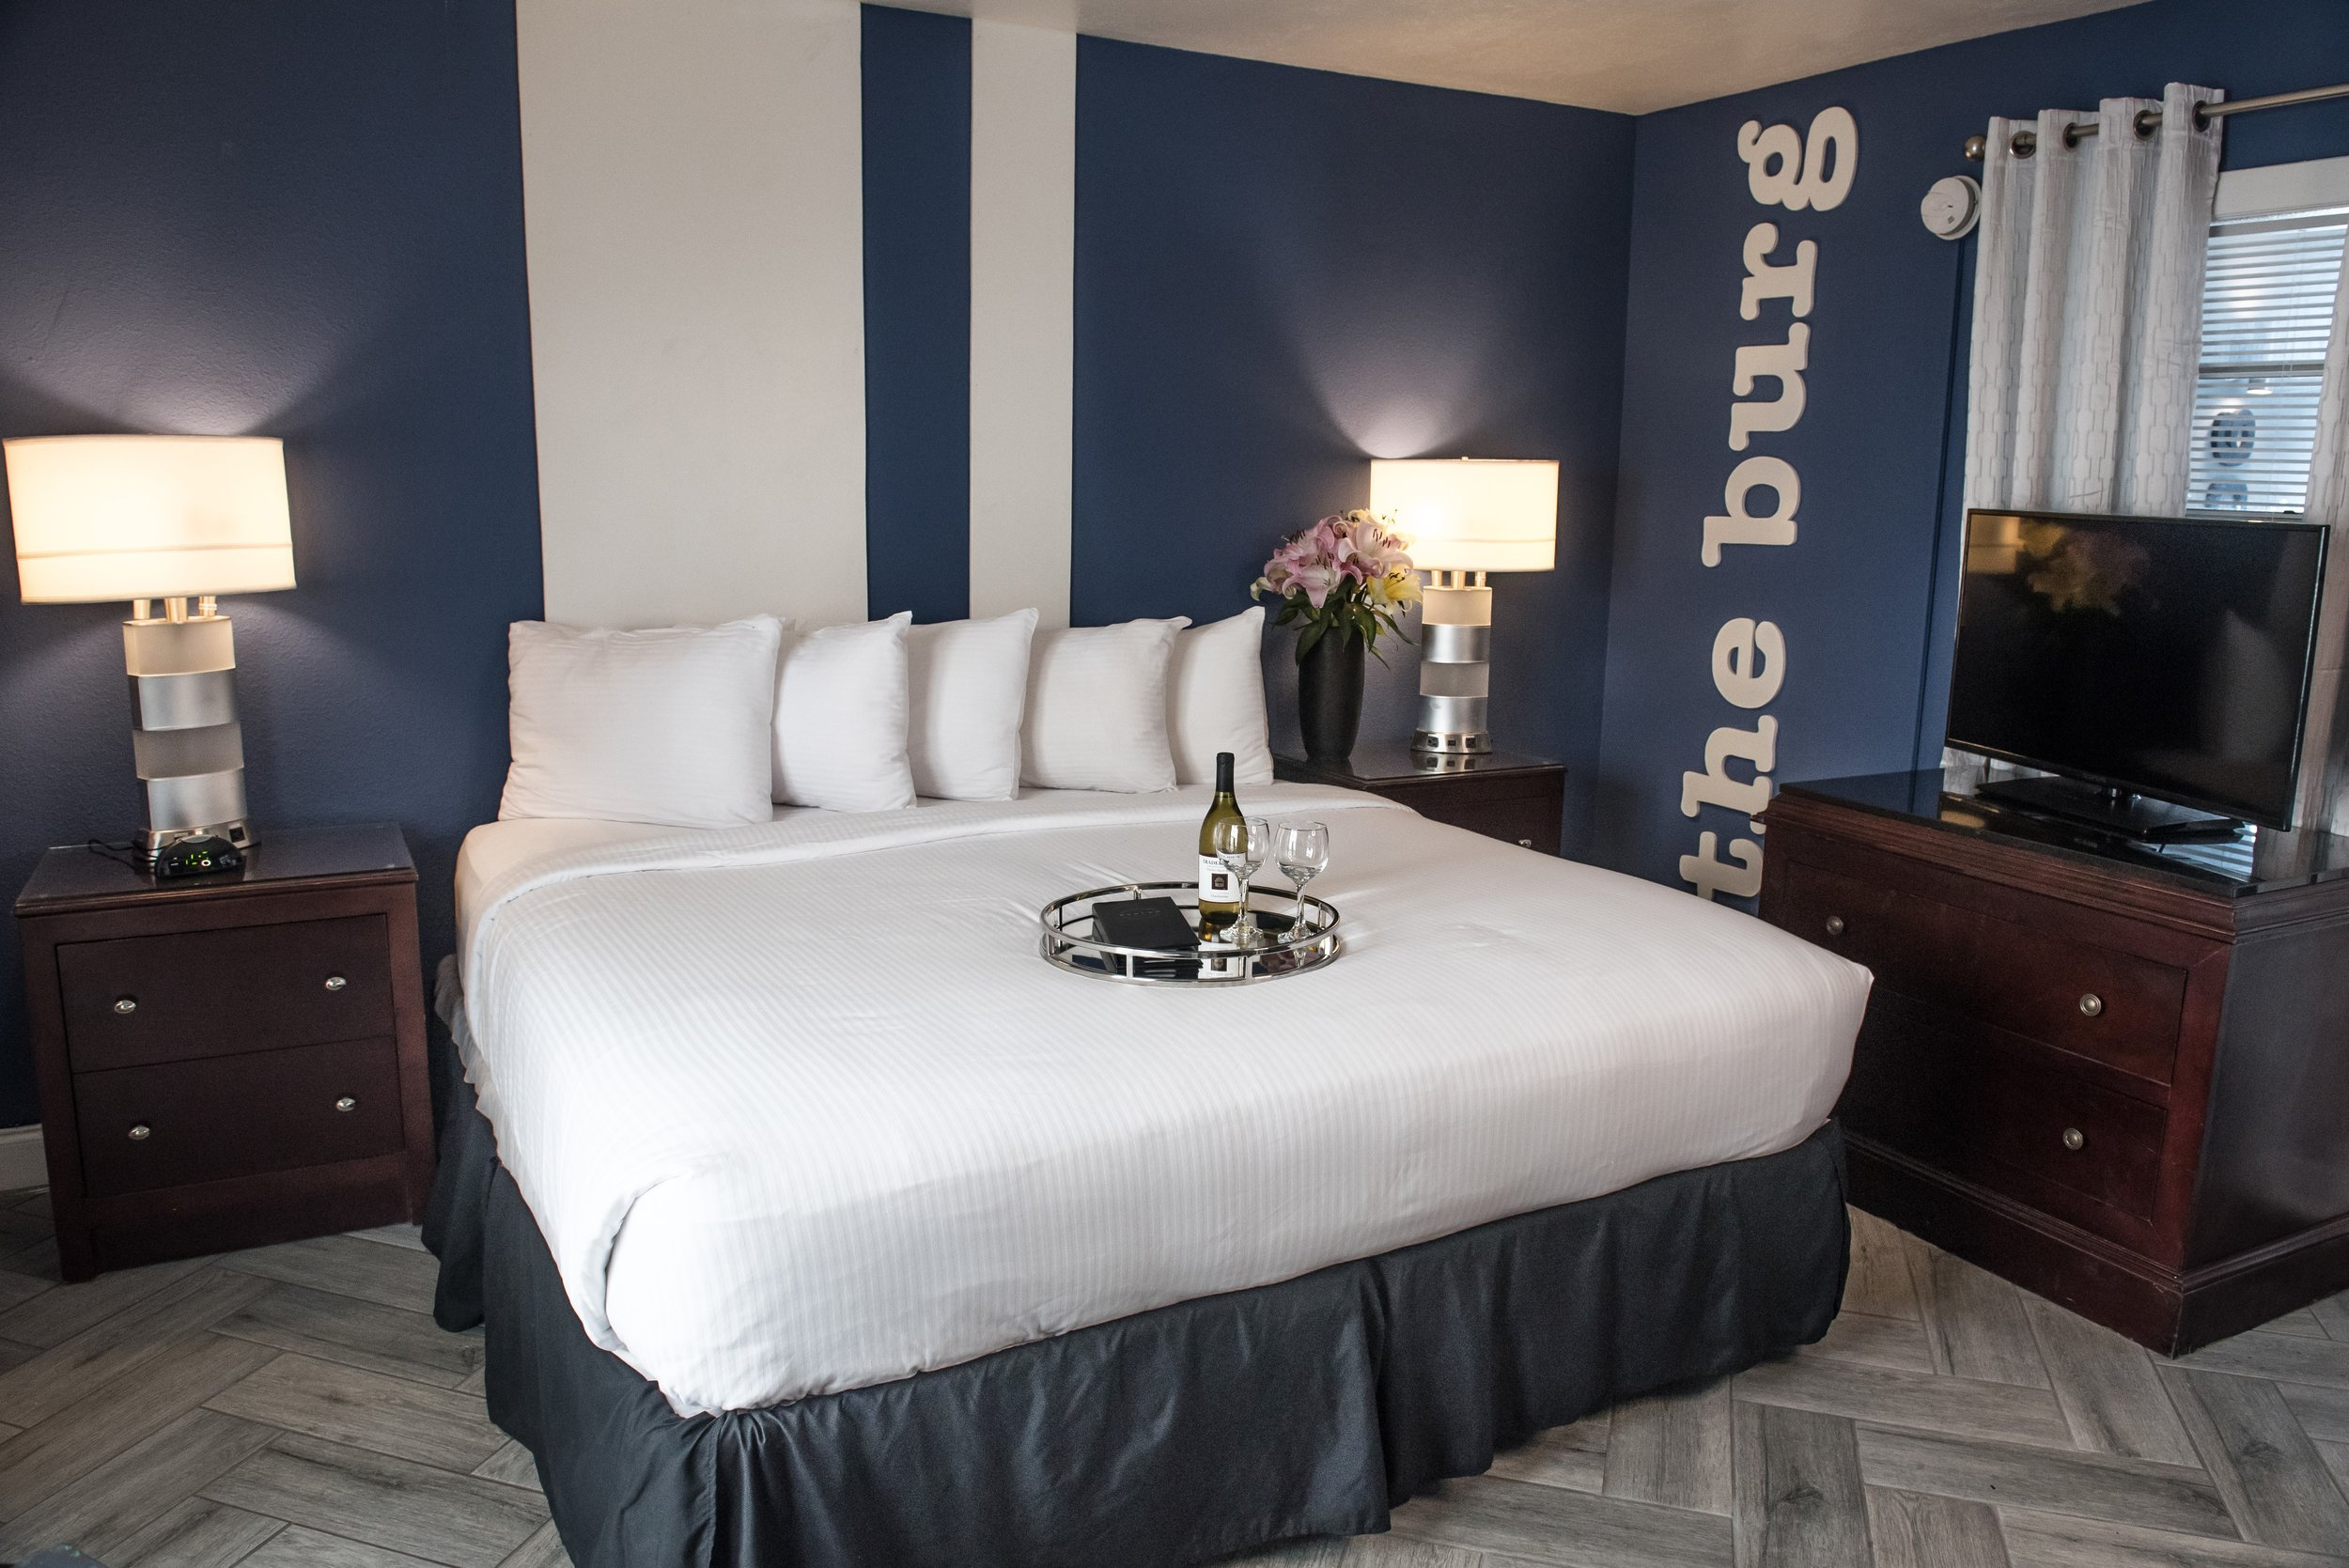 Interior of Studio Suite with a tray of wine and food on top of bed and flat screen TV